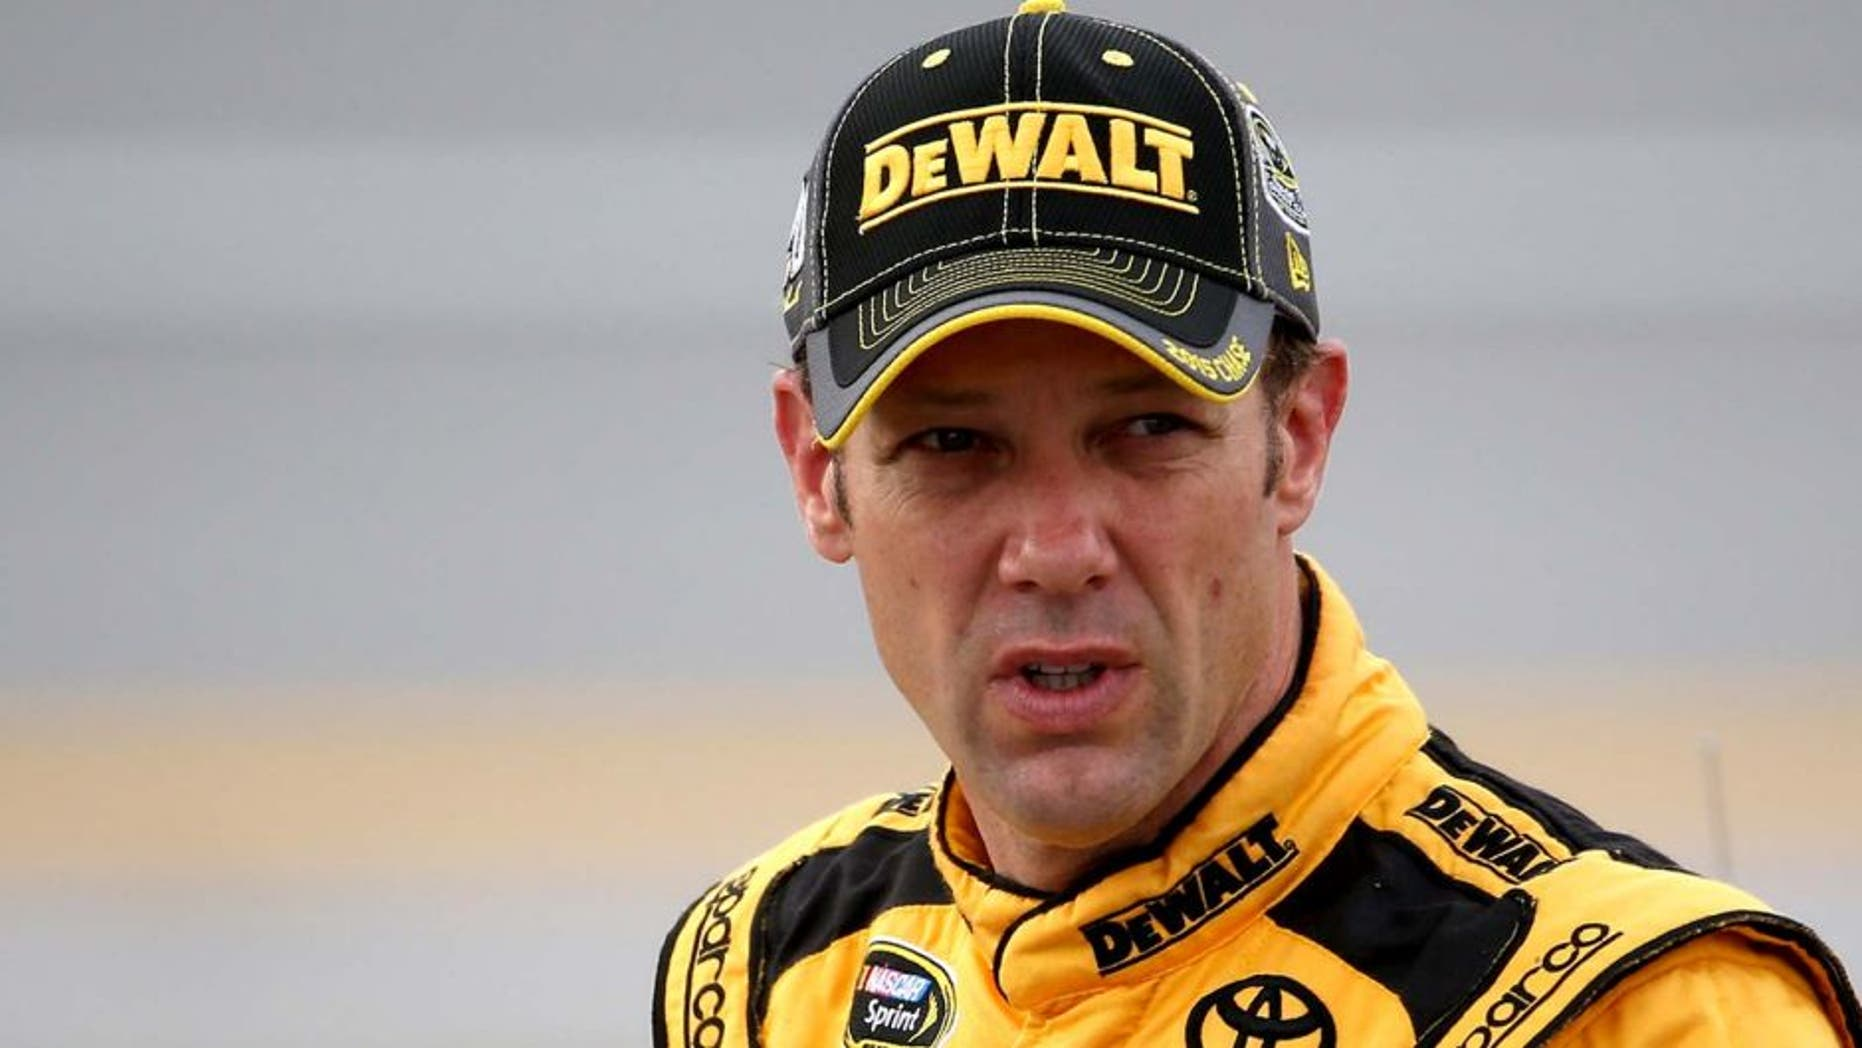 TALLADEGA, AL - OCTOBER 24: Matt Kenseth, driver of the #20 DeWalt Toyota, stands on the grid during qualifying for the NASCAR Sprint Cup Series CampingWorld.com 500 at Talladega Superspeedway on October 24, 2015 in Talladega, Alabama. (Photo by Chris Graythen/NASCAR via Getty Images)